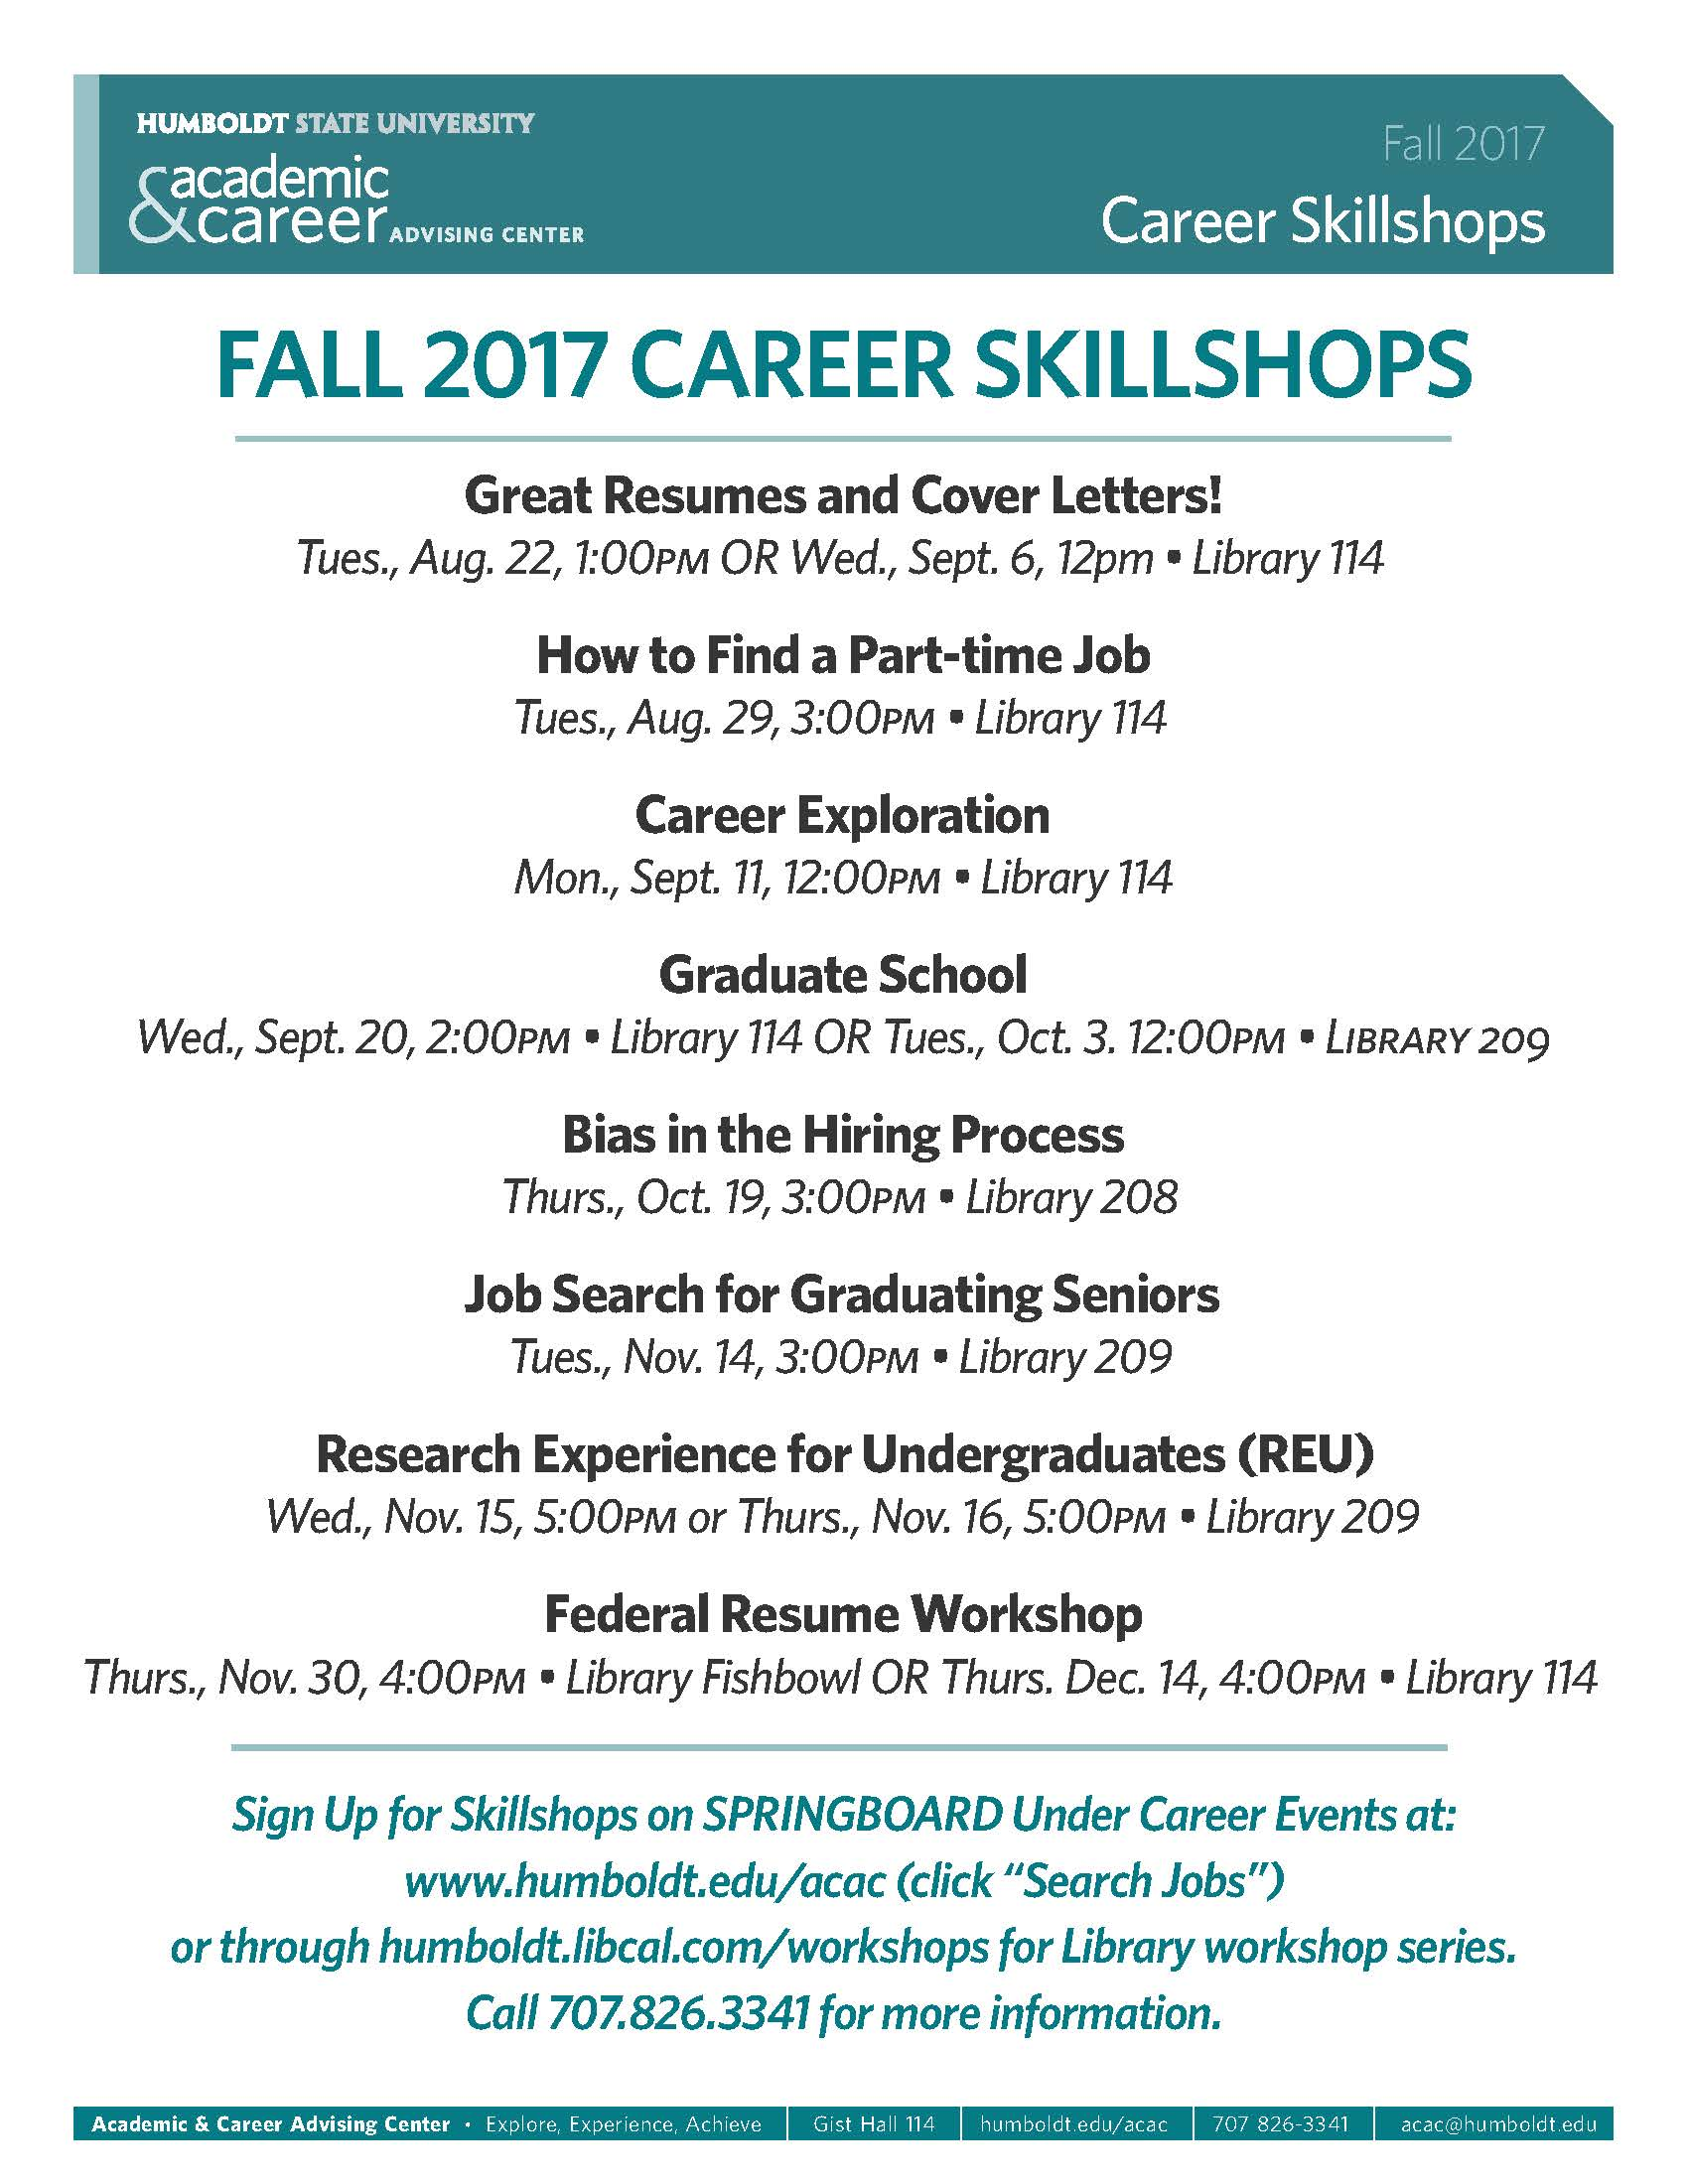 Job Searching for Graduating Seniors